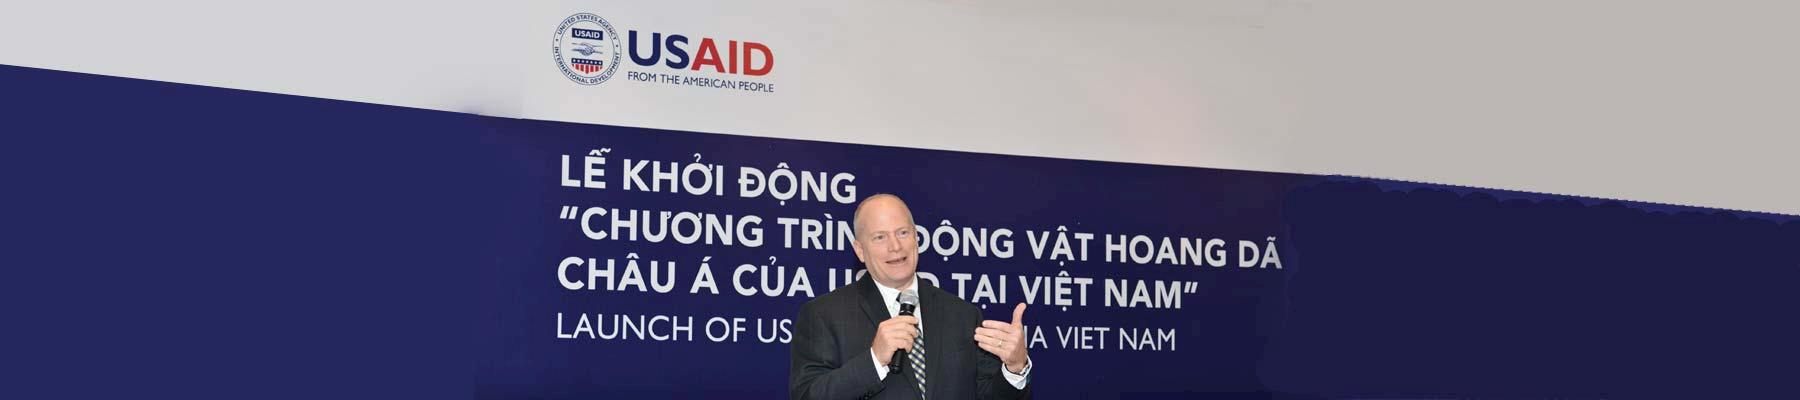 A USAID event was held to launch Phase 3 of the Chi initiative in Viet Nam © USAID Vietnam